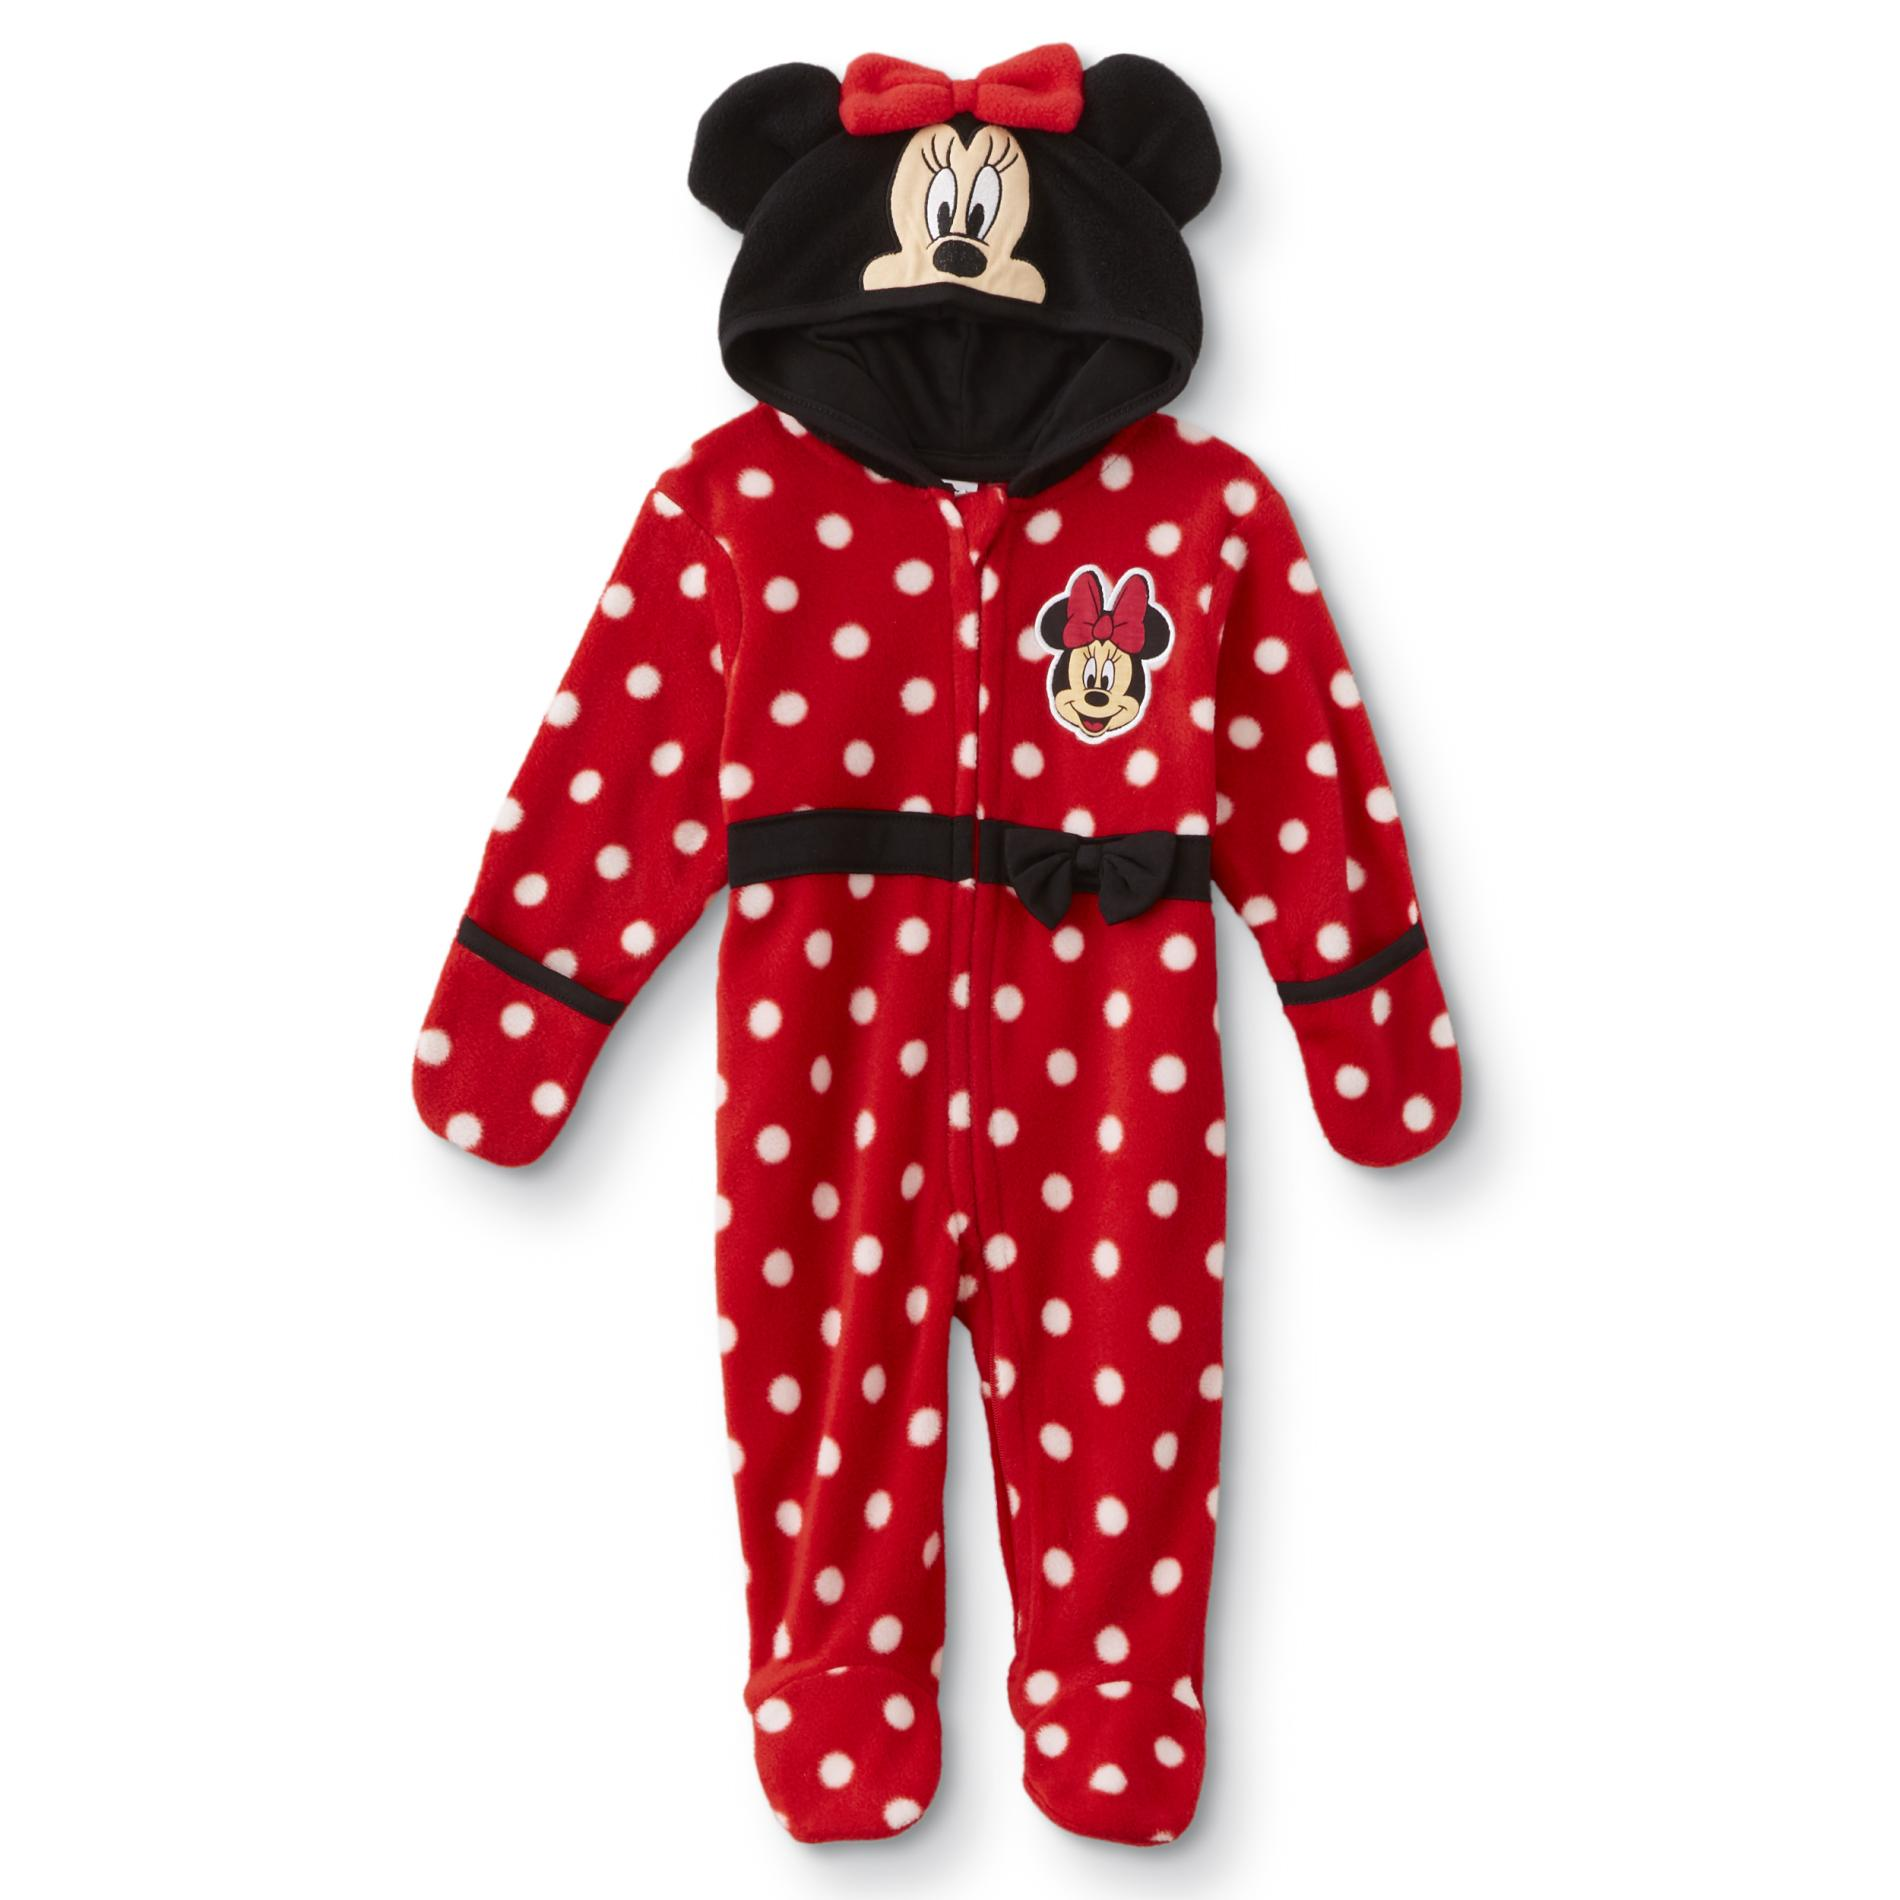 Size 0 3 Months Baby Clothing Girls Sears